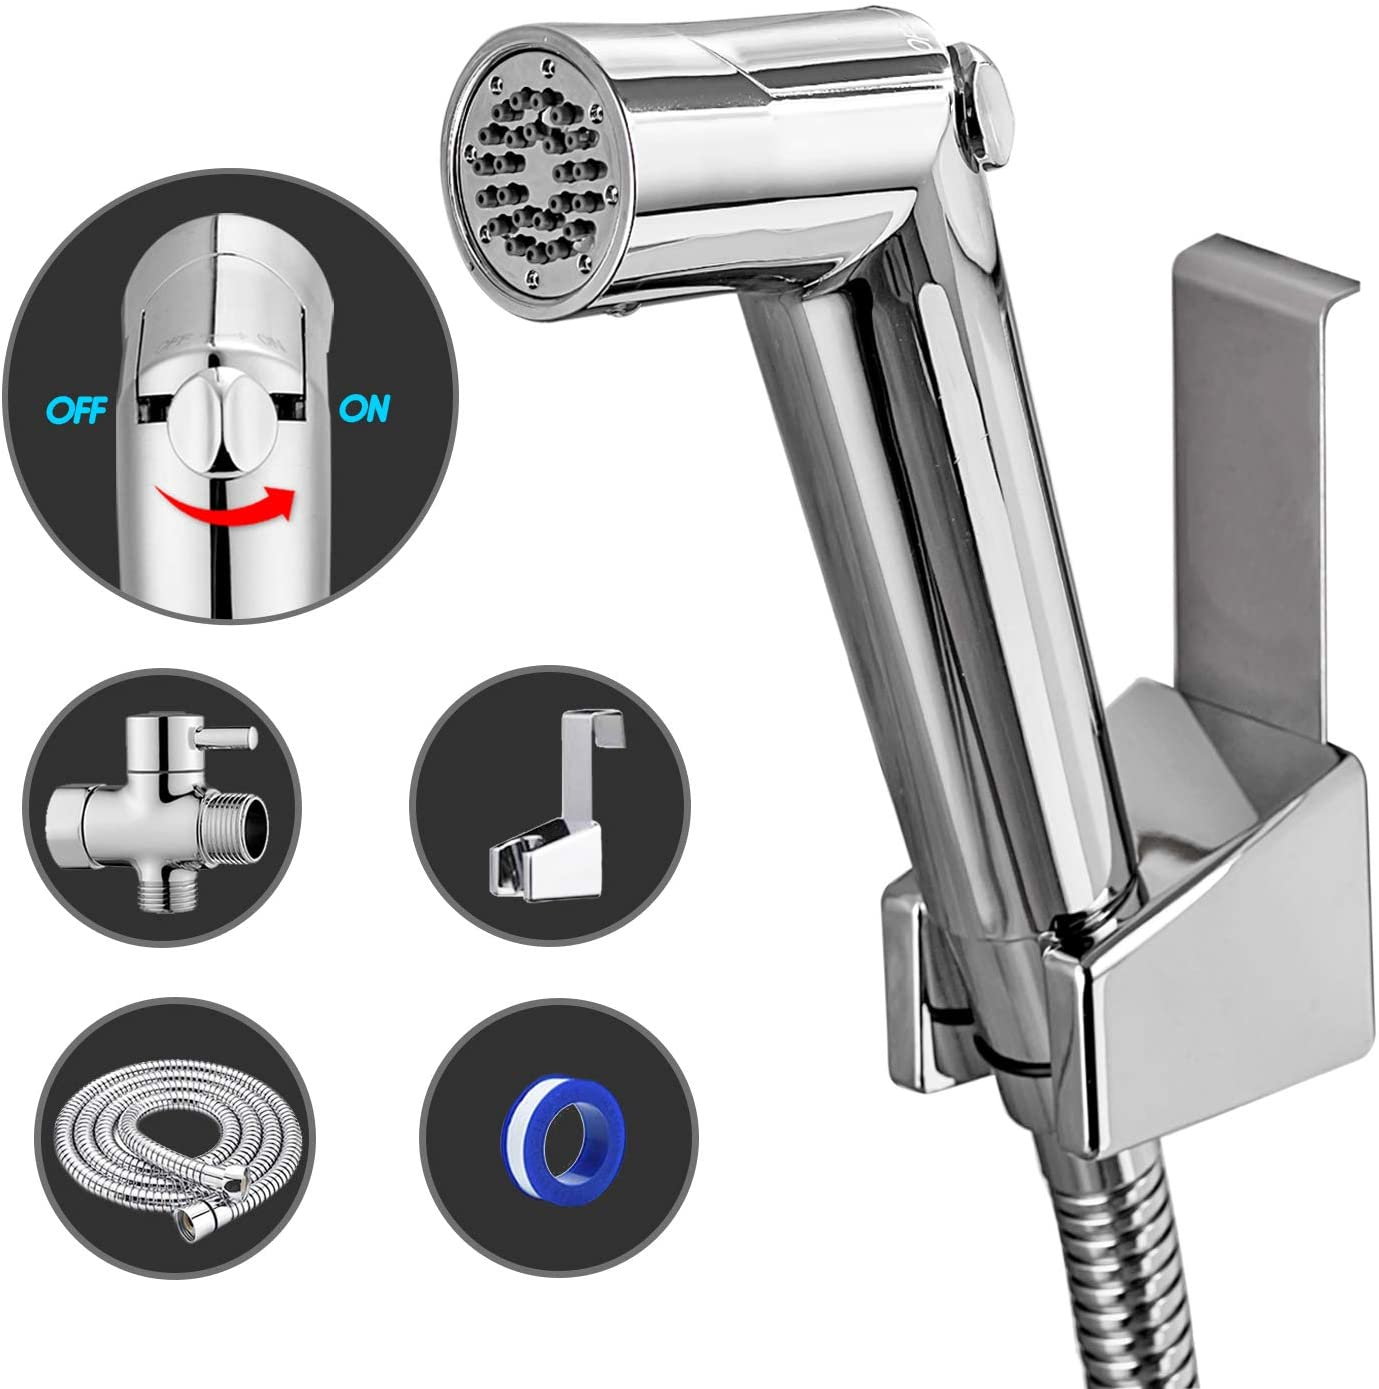 Grohe type bathroom shattaf bidet spray